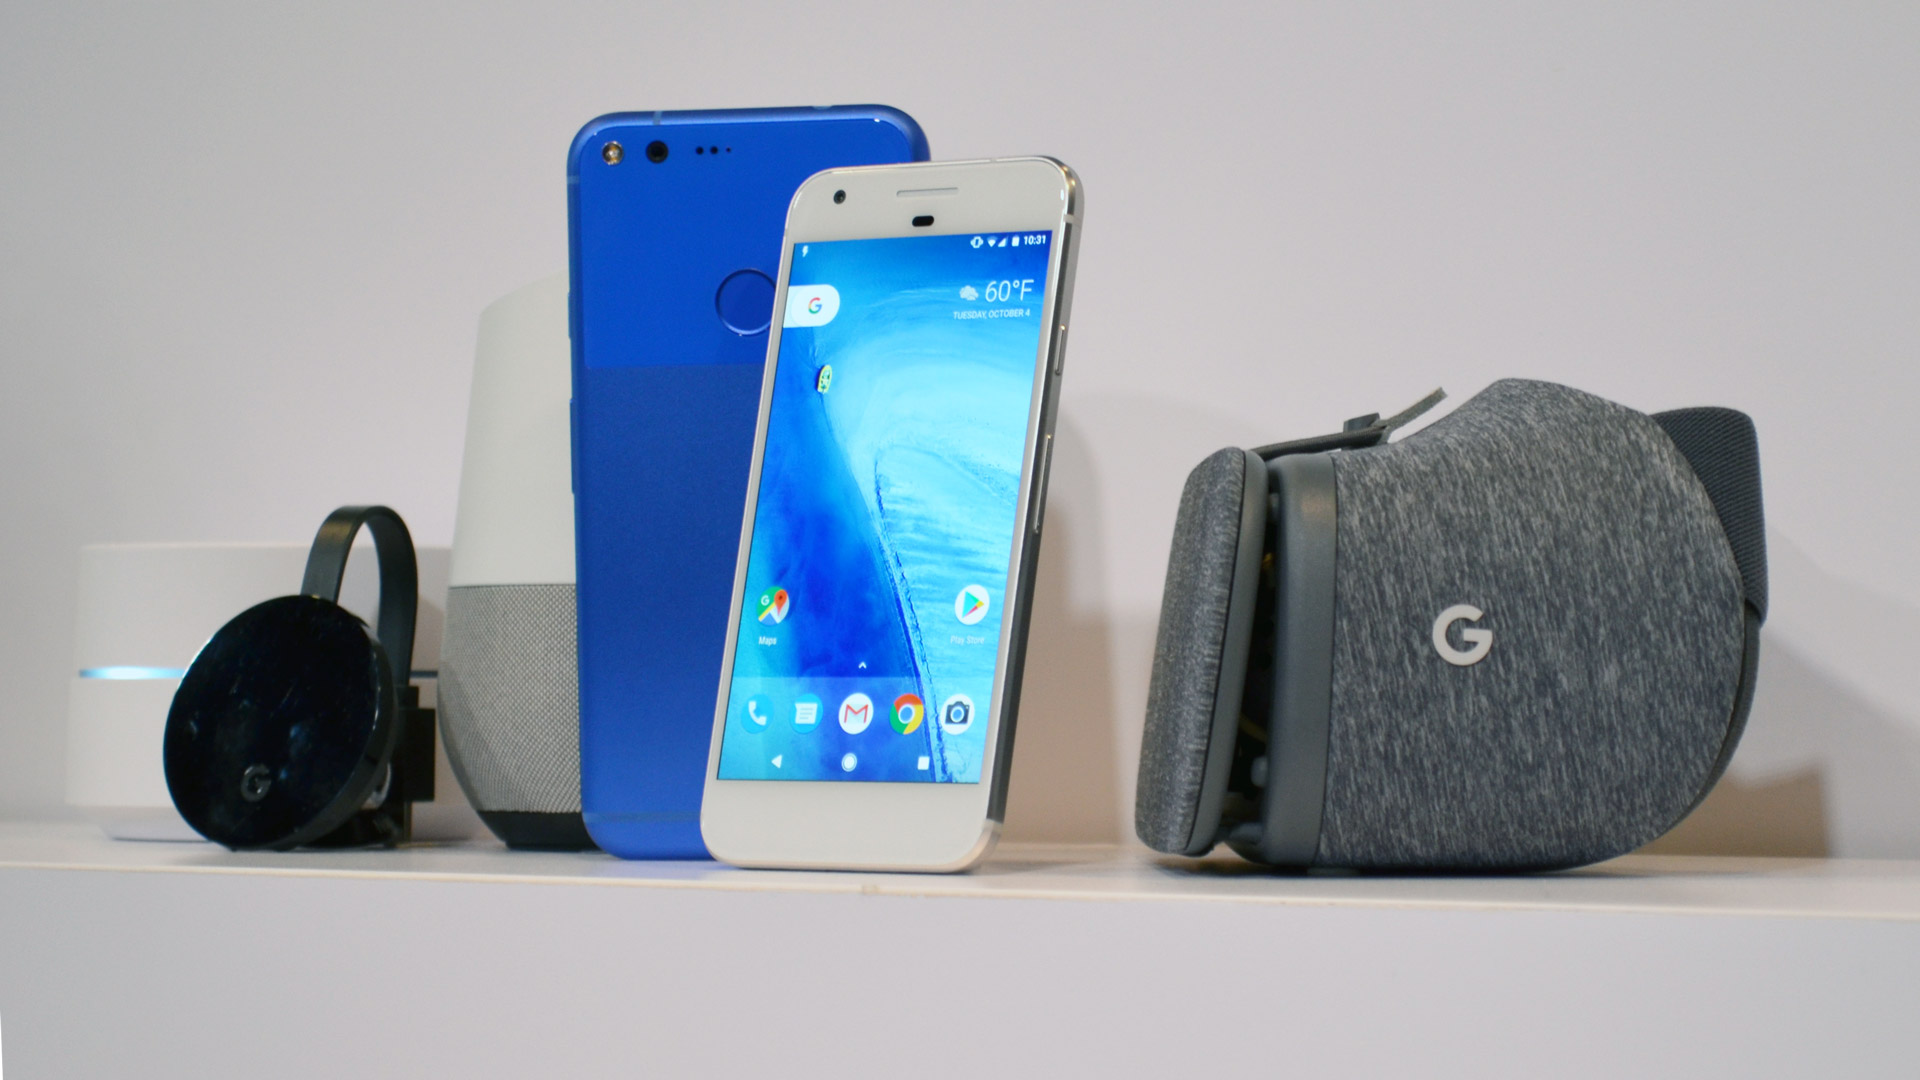 Google Pixel and Google Daydream View side by side